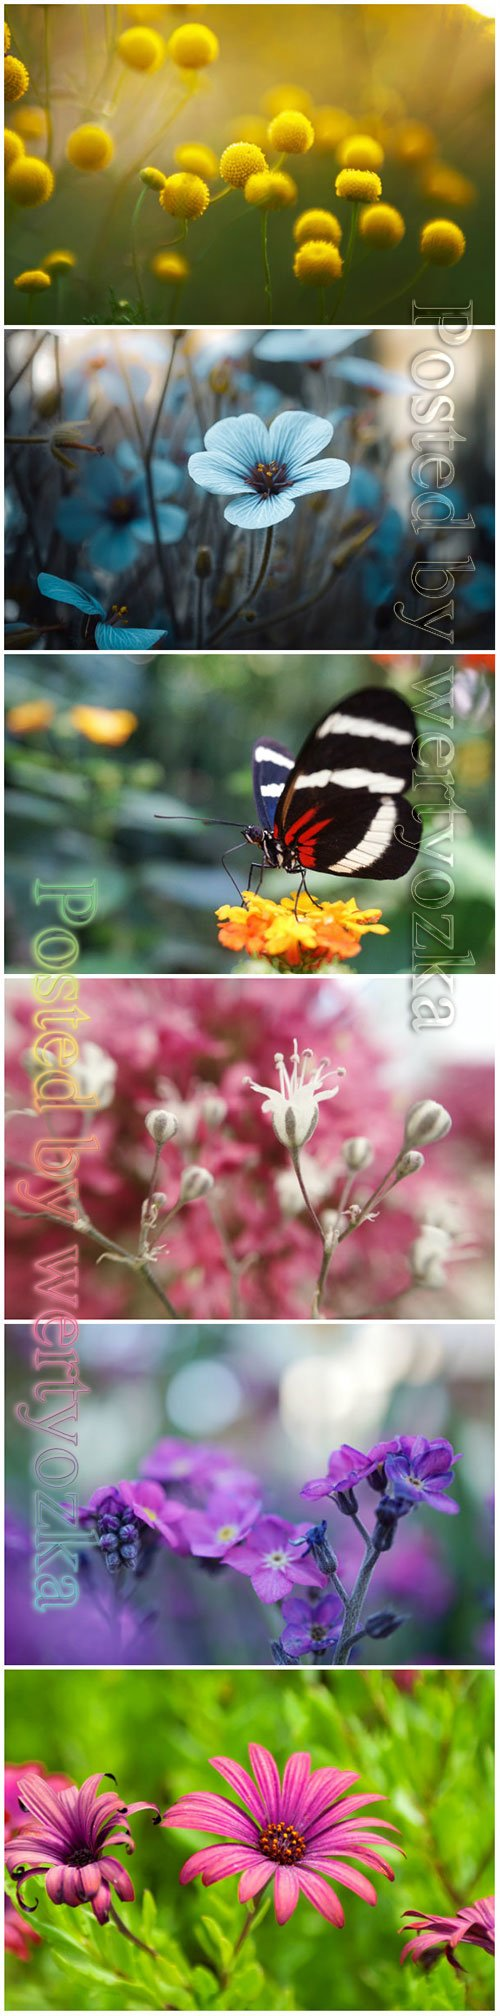 Flowers and butterflies beautiful stock photo